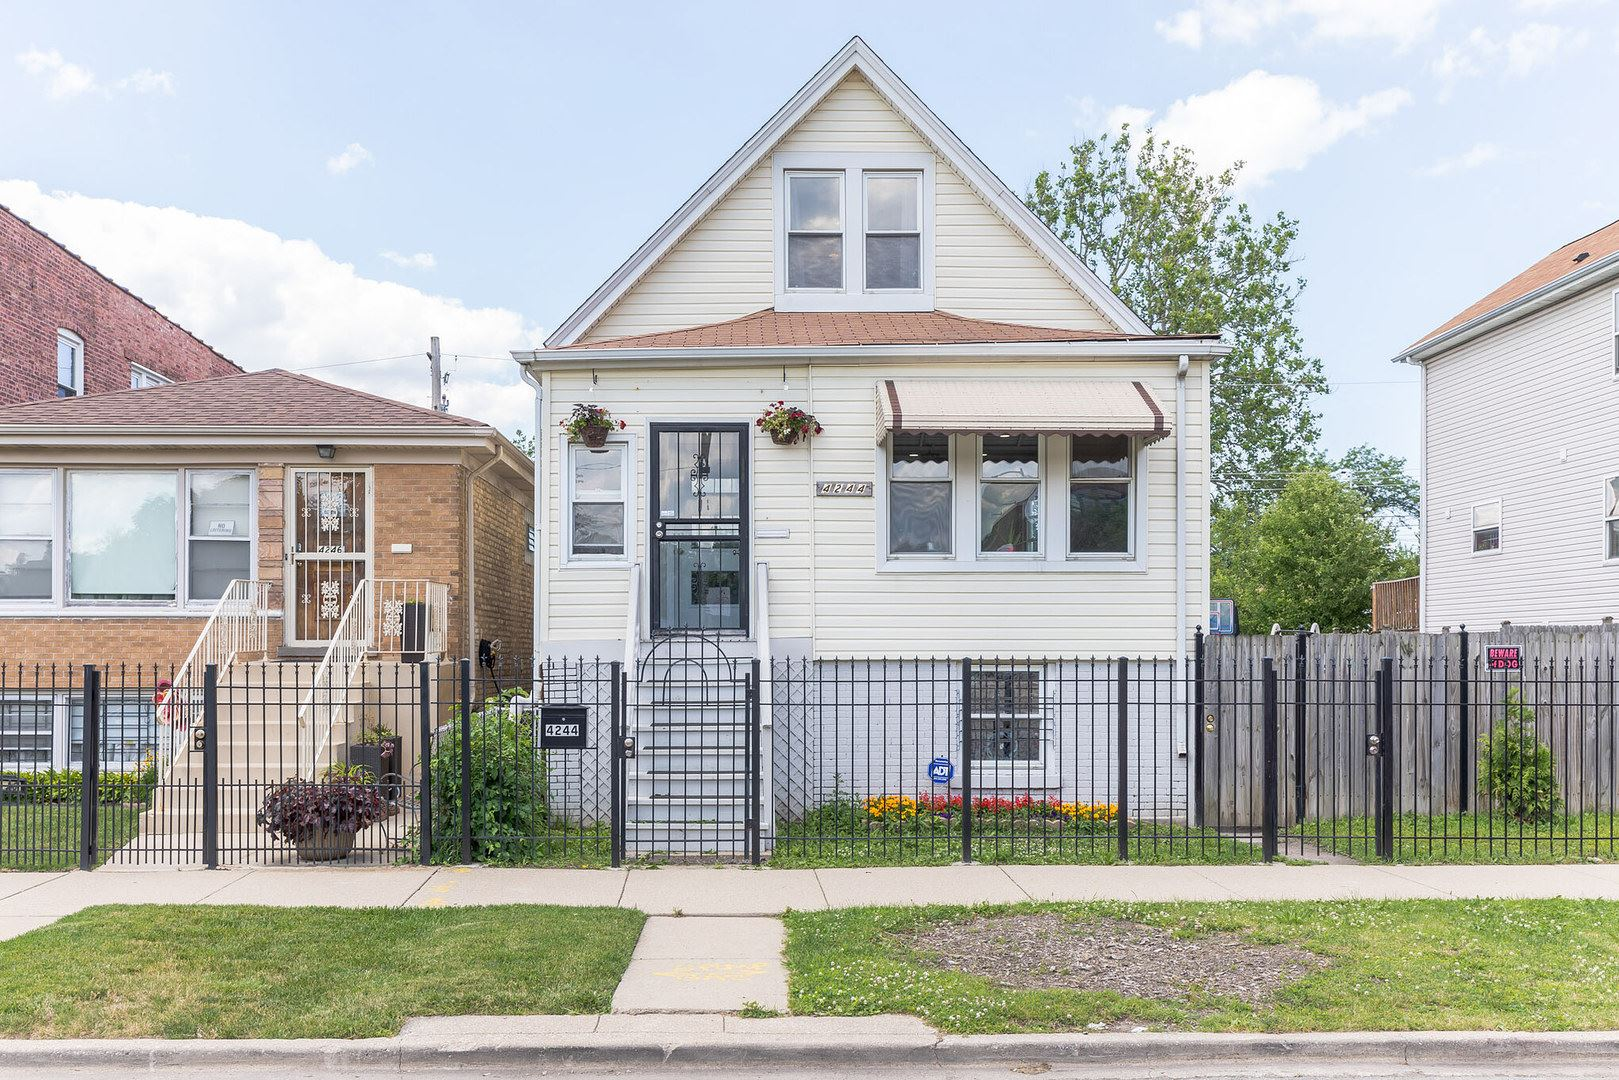 4244 W Thomas Street, Chicago, IL 60651 - #: 10754543